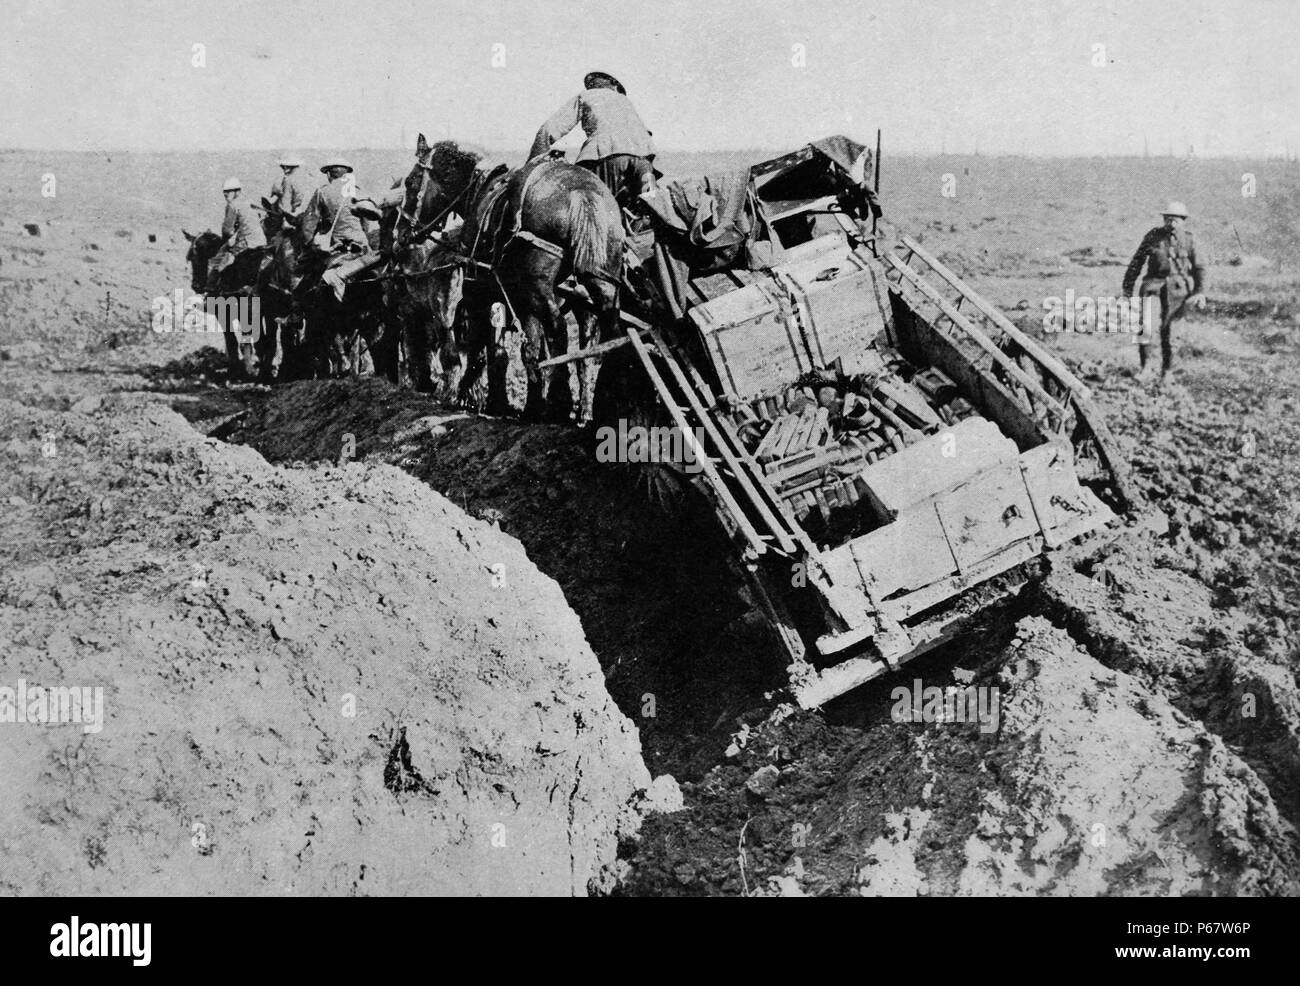 British army supplies are taken with great difficulty over the muddy fields of Flanders in Belgium in 1915, during world war one. Flanders (and Belgium as a whole) saw some of the greatest loss of life on the Western Front of the First World War, in particular from the three battles of Ypres. Due to the hundreds of thousands of casualties at Ypres - Stock Image